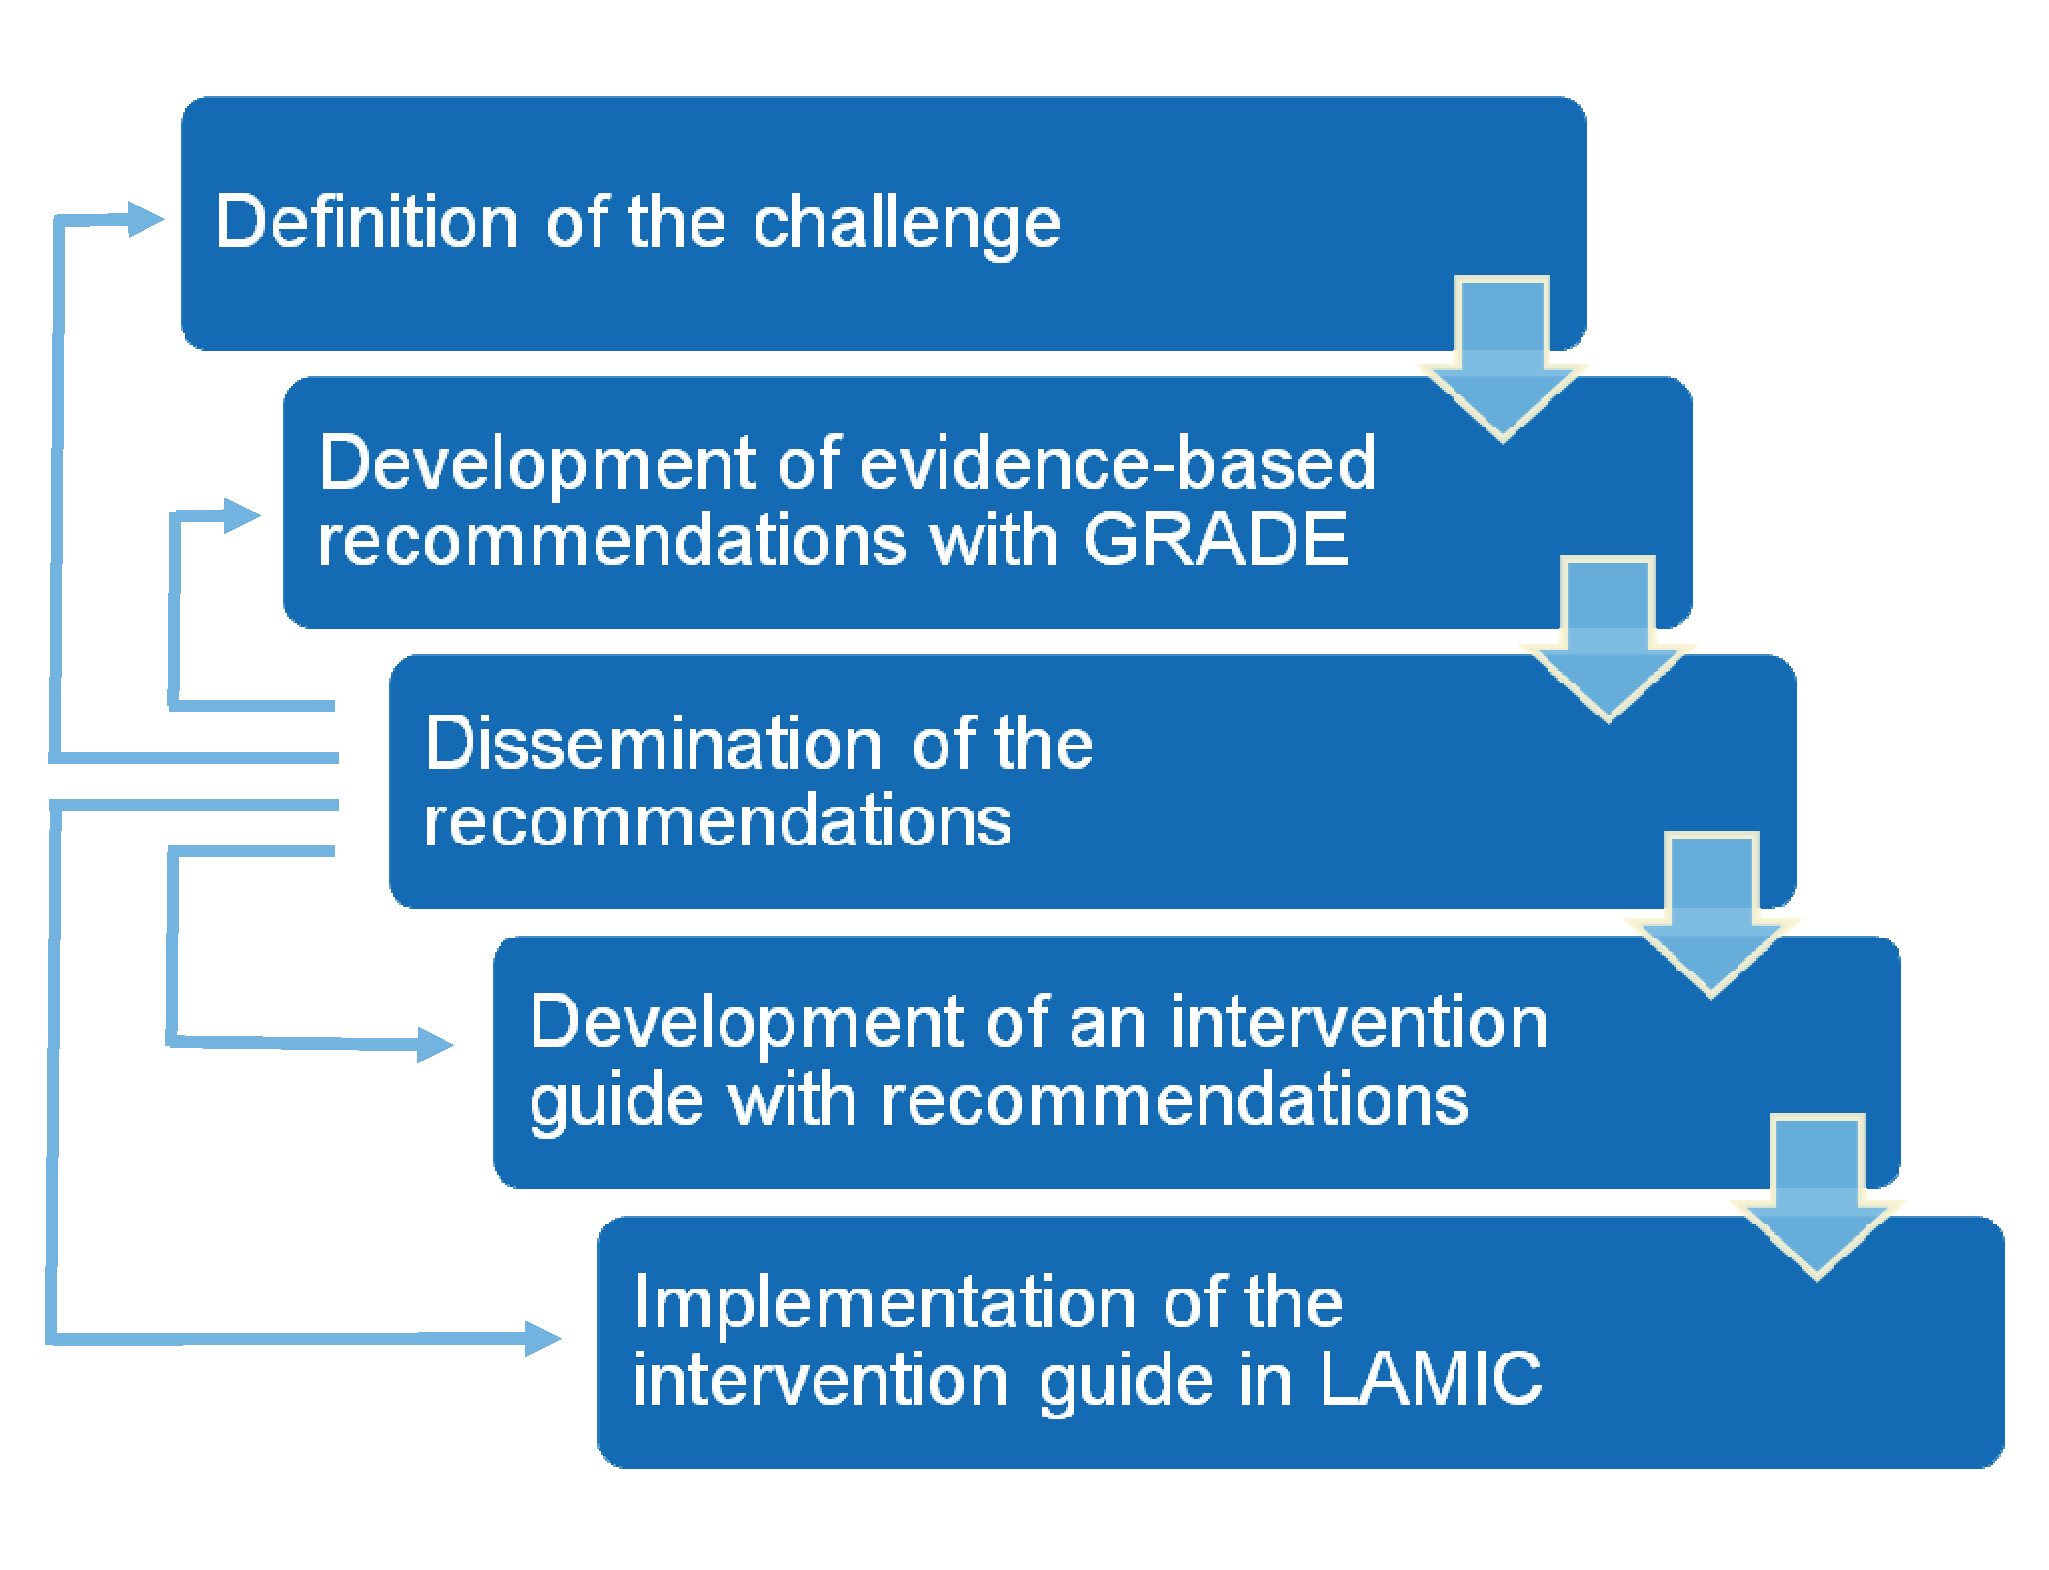 Steps in the formulation and implementation of the <i>mhGAP Intervention Guide</i>.